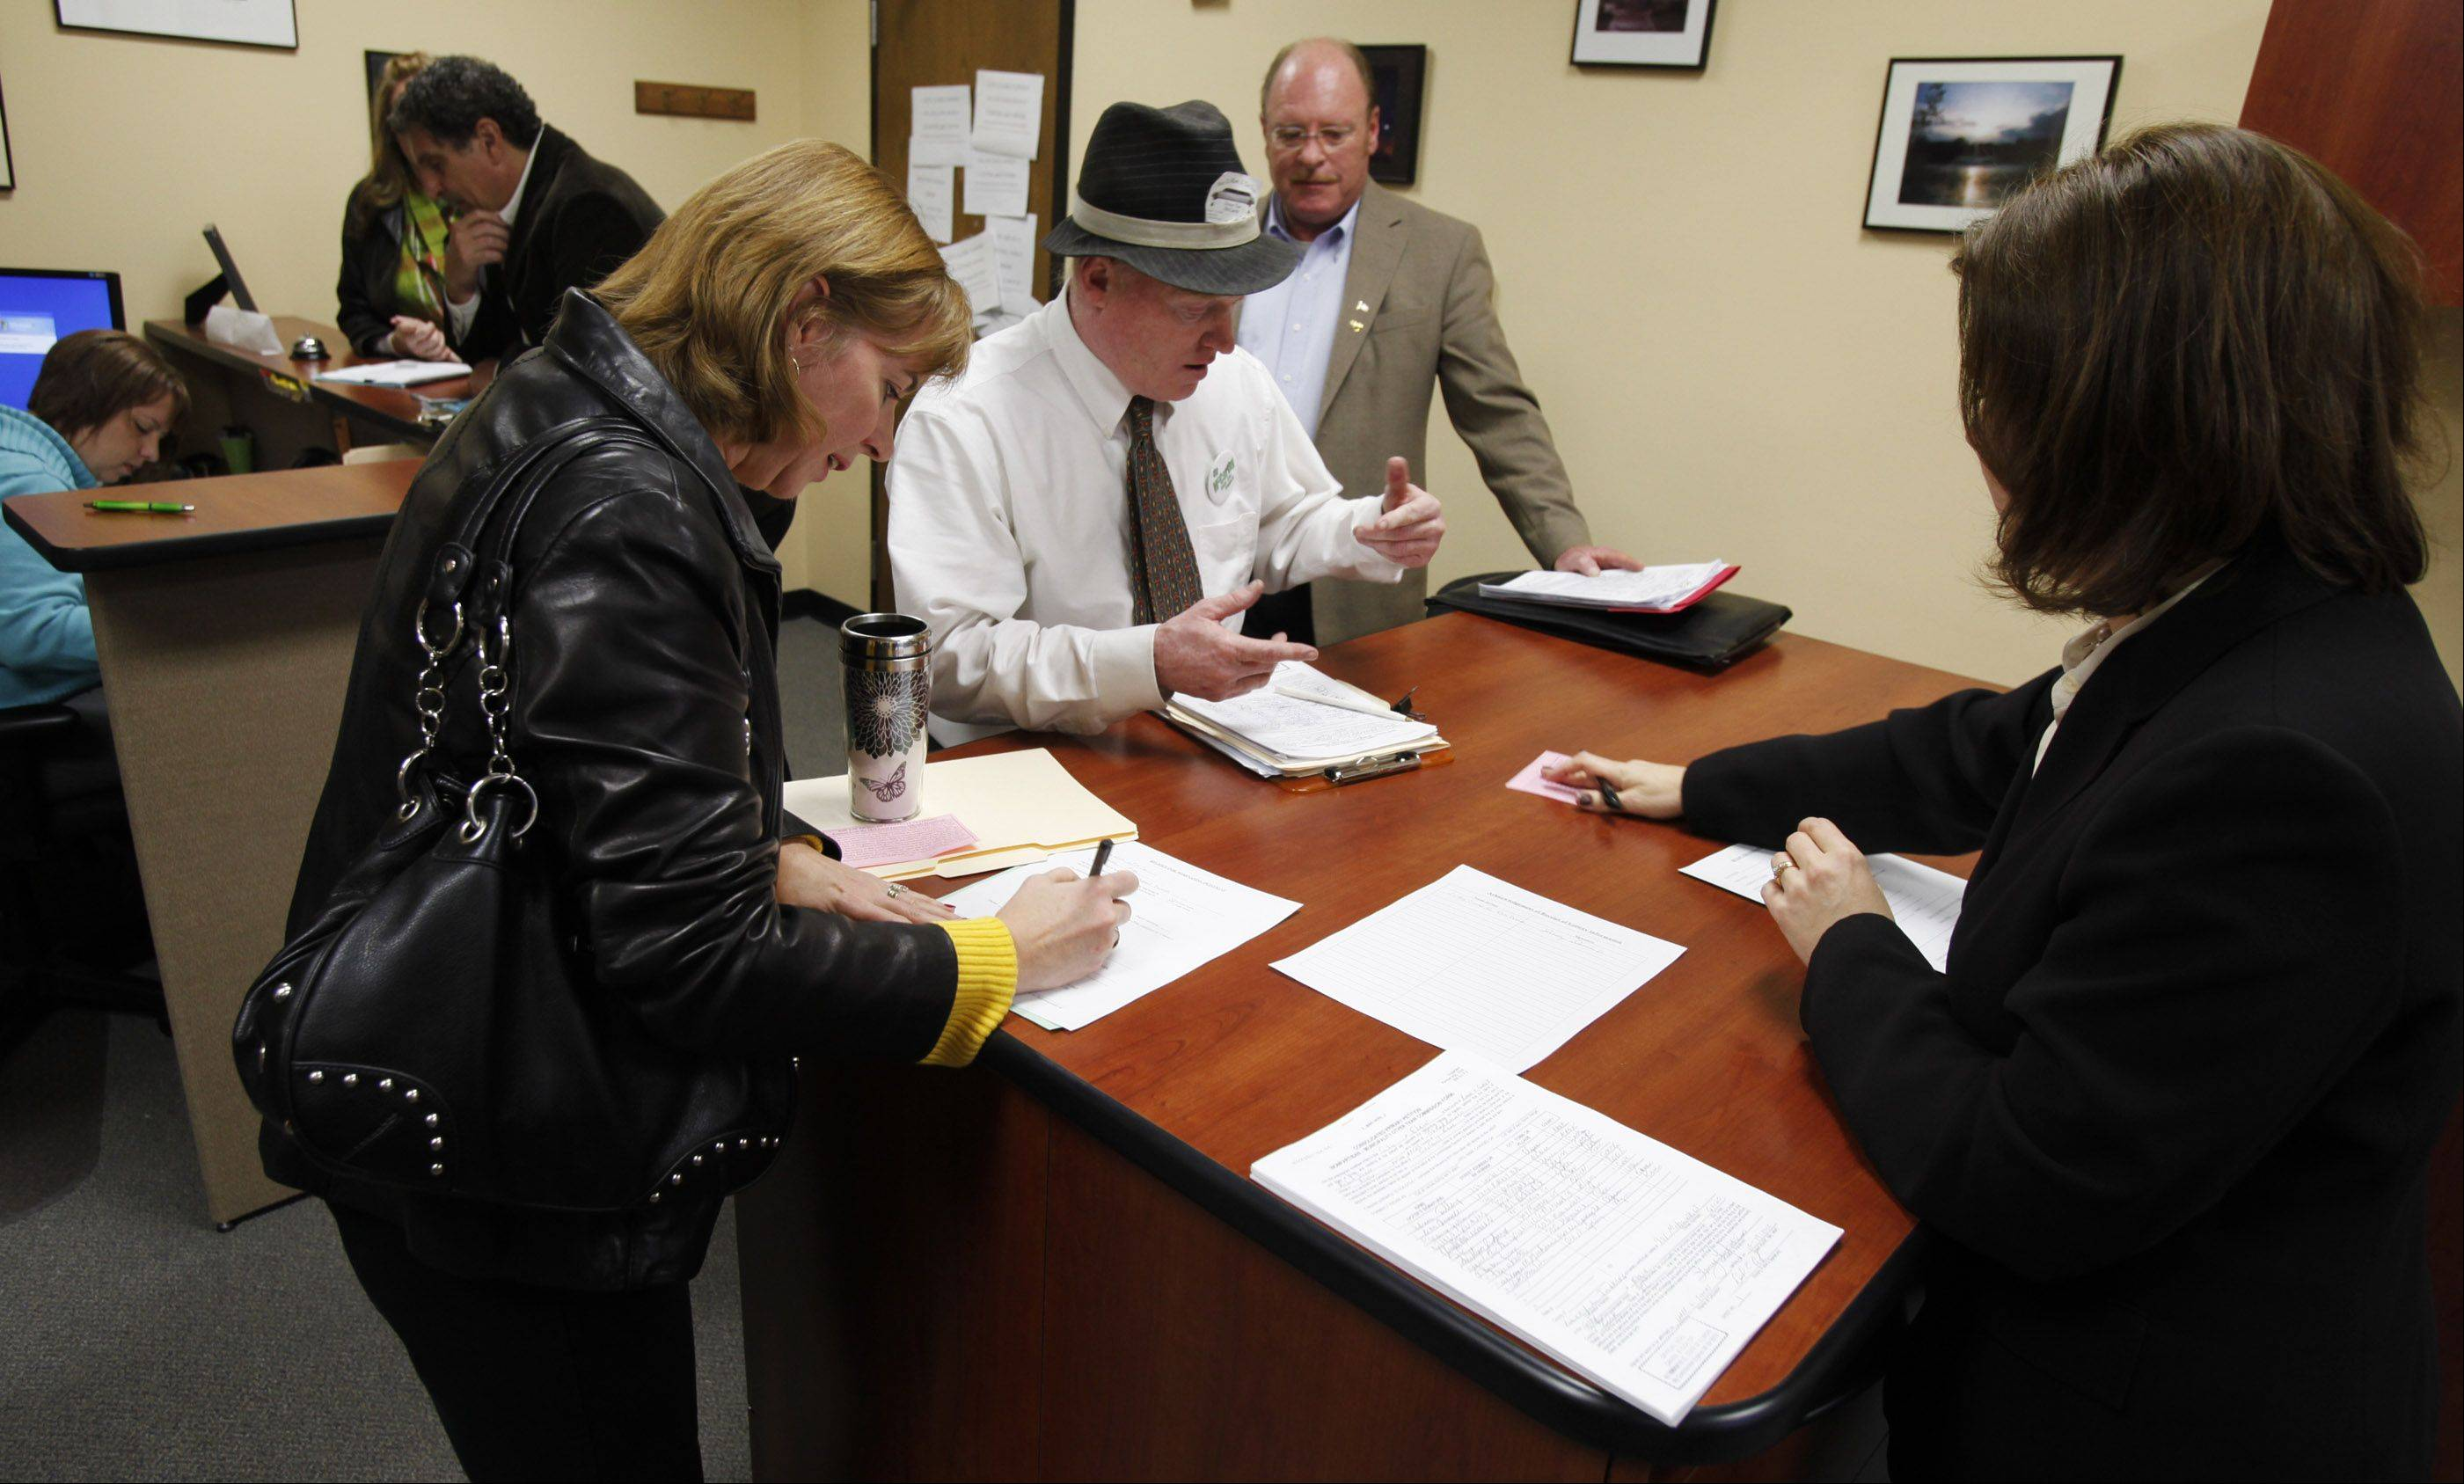 Elgin City Clerk Kimberly Dewis, right, helps candidates file their paperwork early Monday morning at Elgin City Hall. From left are Judy Dunne (filing for her husband, Councilman Richard Dunne), Tom McCarthy and Terry Gavin.